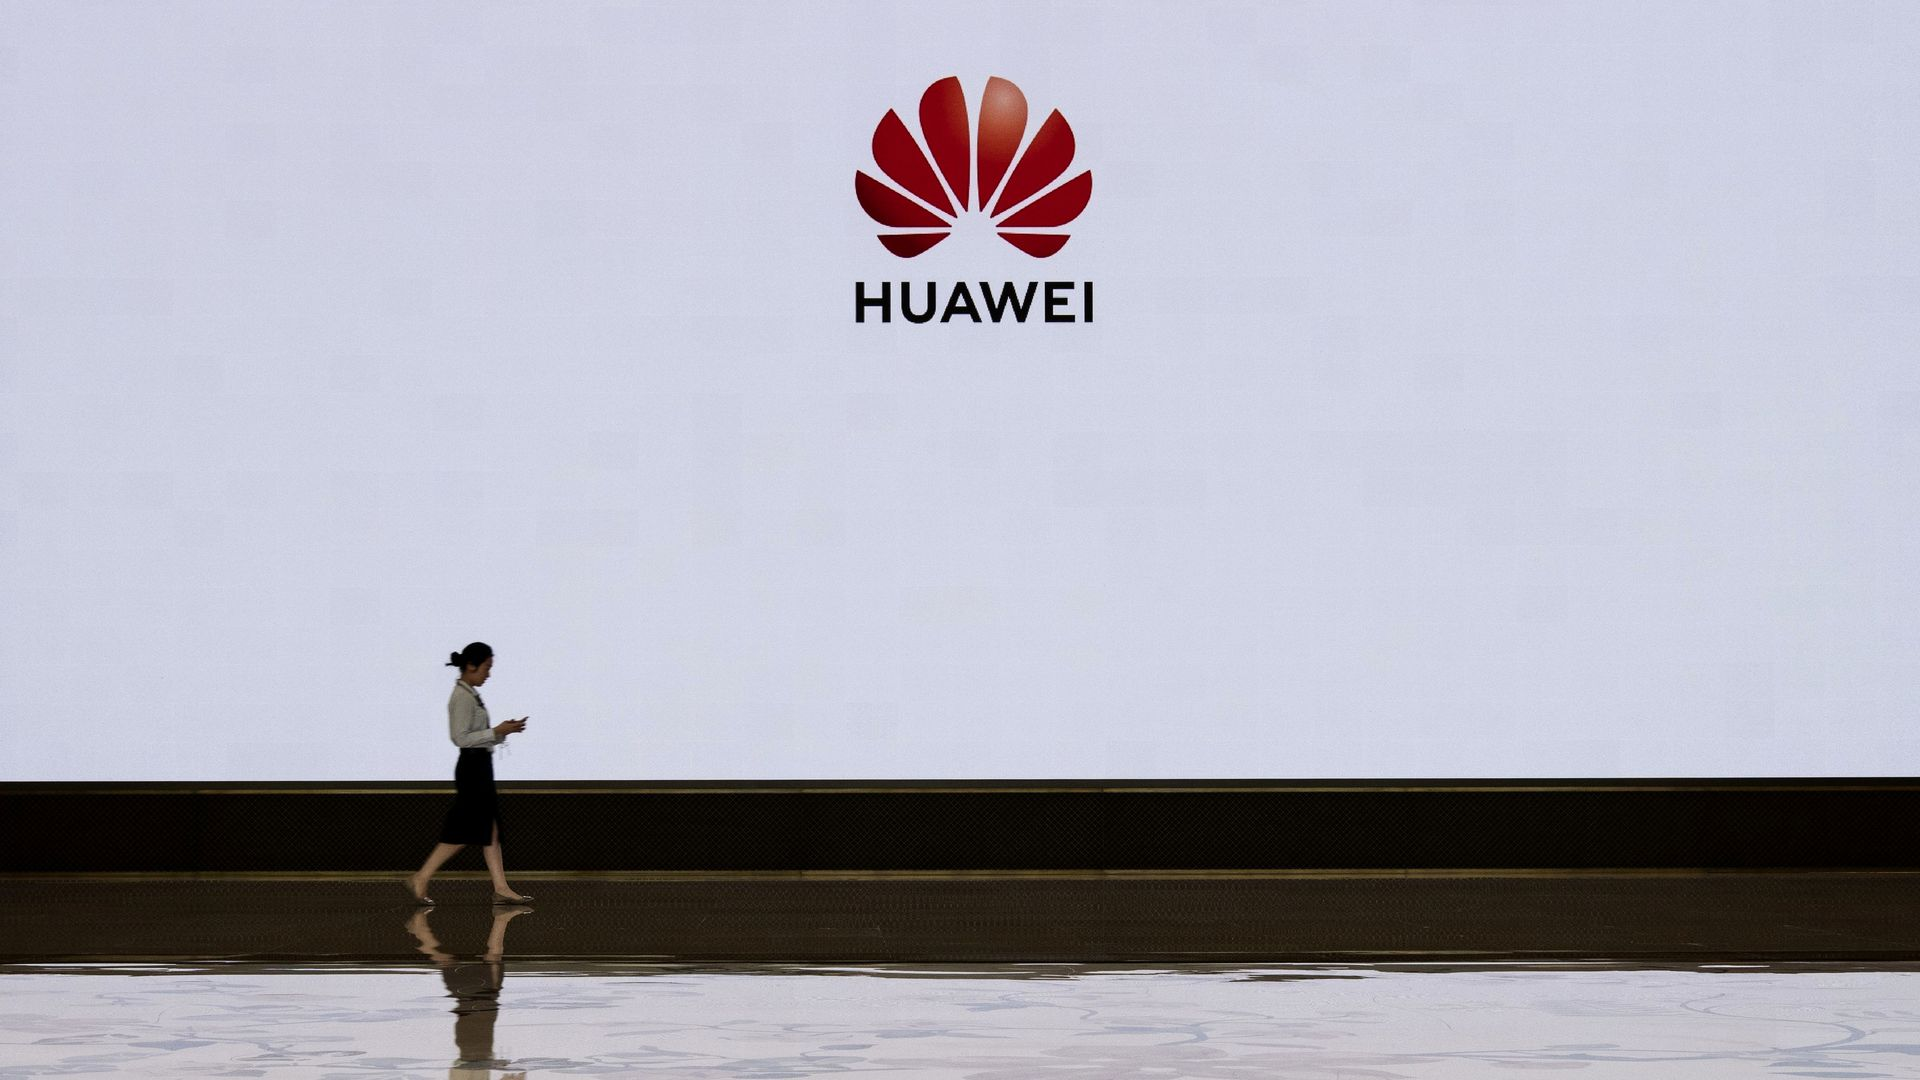 In this image, a woman walks by a large white wall that also includes the Huawei logo.